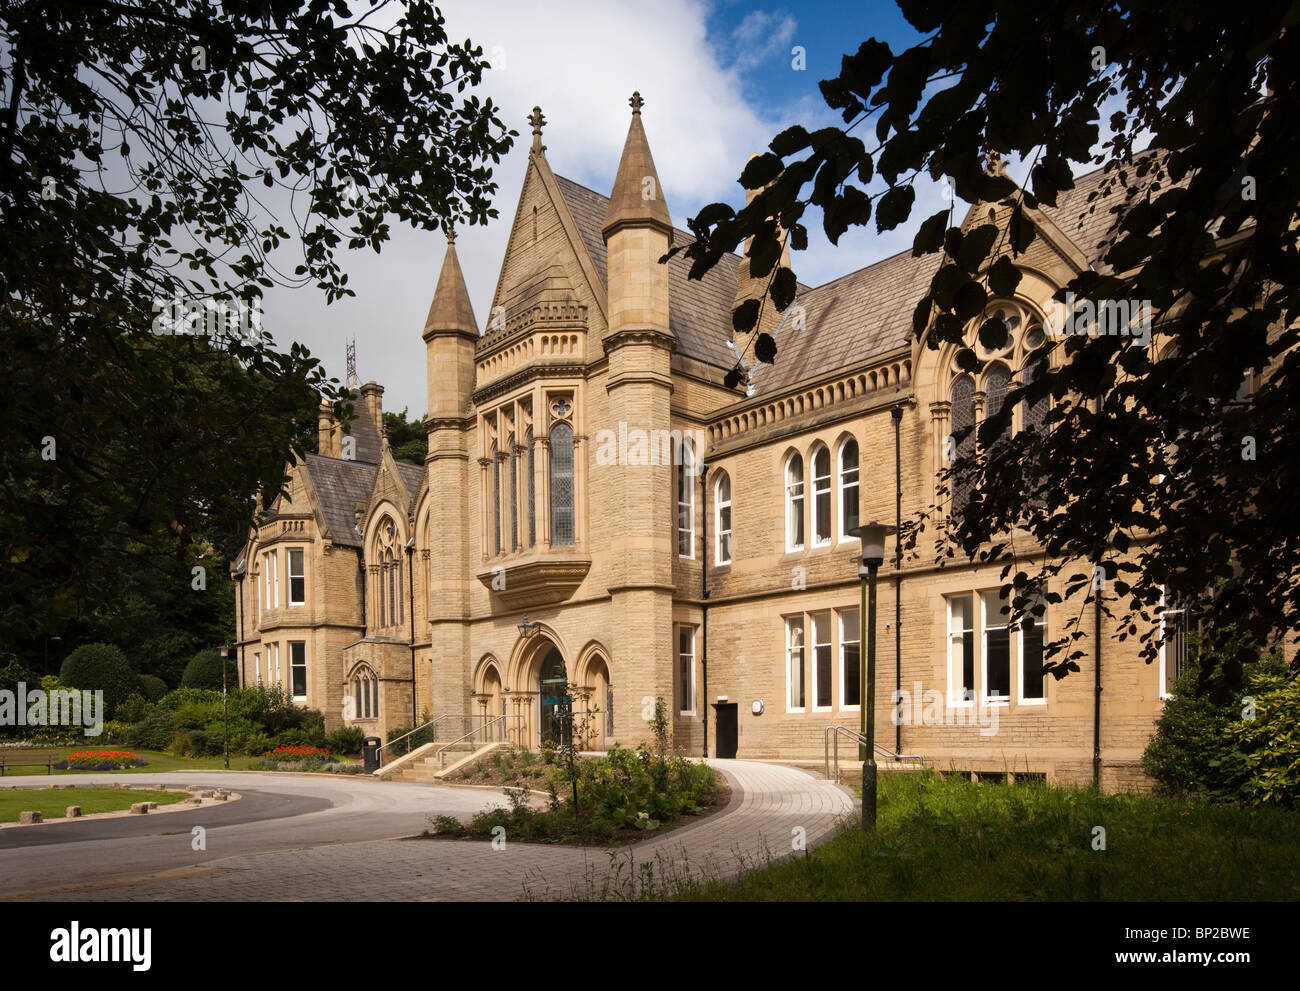 UK, England, Yorkshire, Bradford, University School of Management building - Stock Image